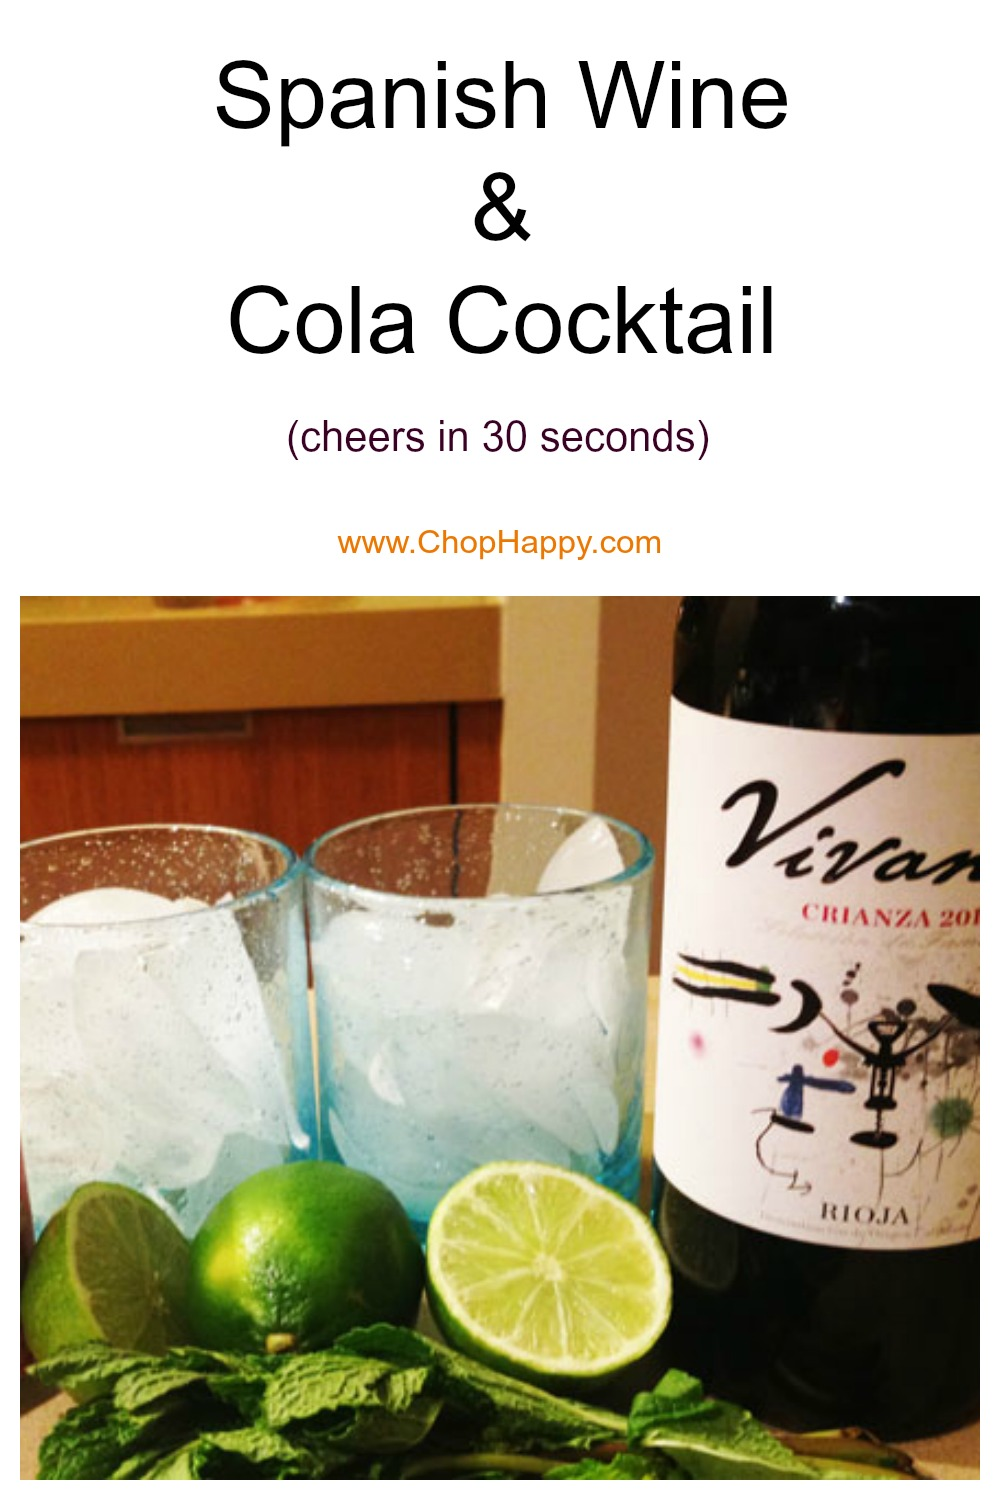 Spanish Wine and Cola Cocktail. Grab wine, soda, and citrusy lime. This is super easy Spanish recipe! Happy Cocktail making! www.ChopHappy.com #cocktailrecipe #spanishdrinkrecipe